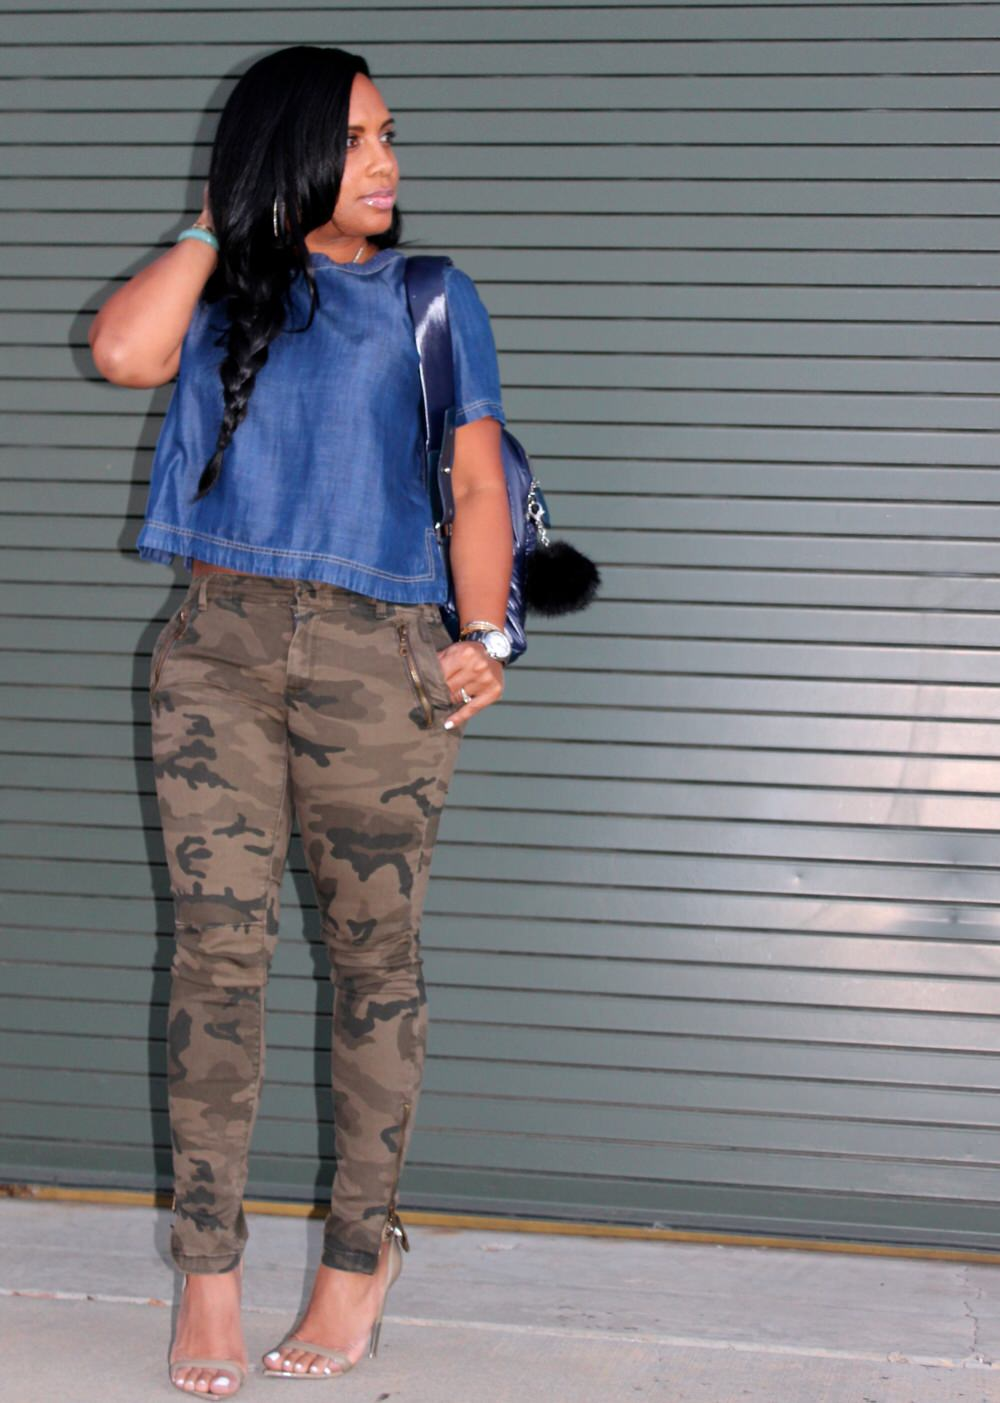 denim top with camouflage pants